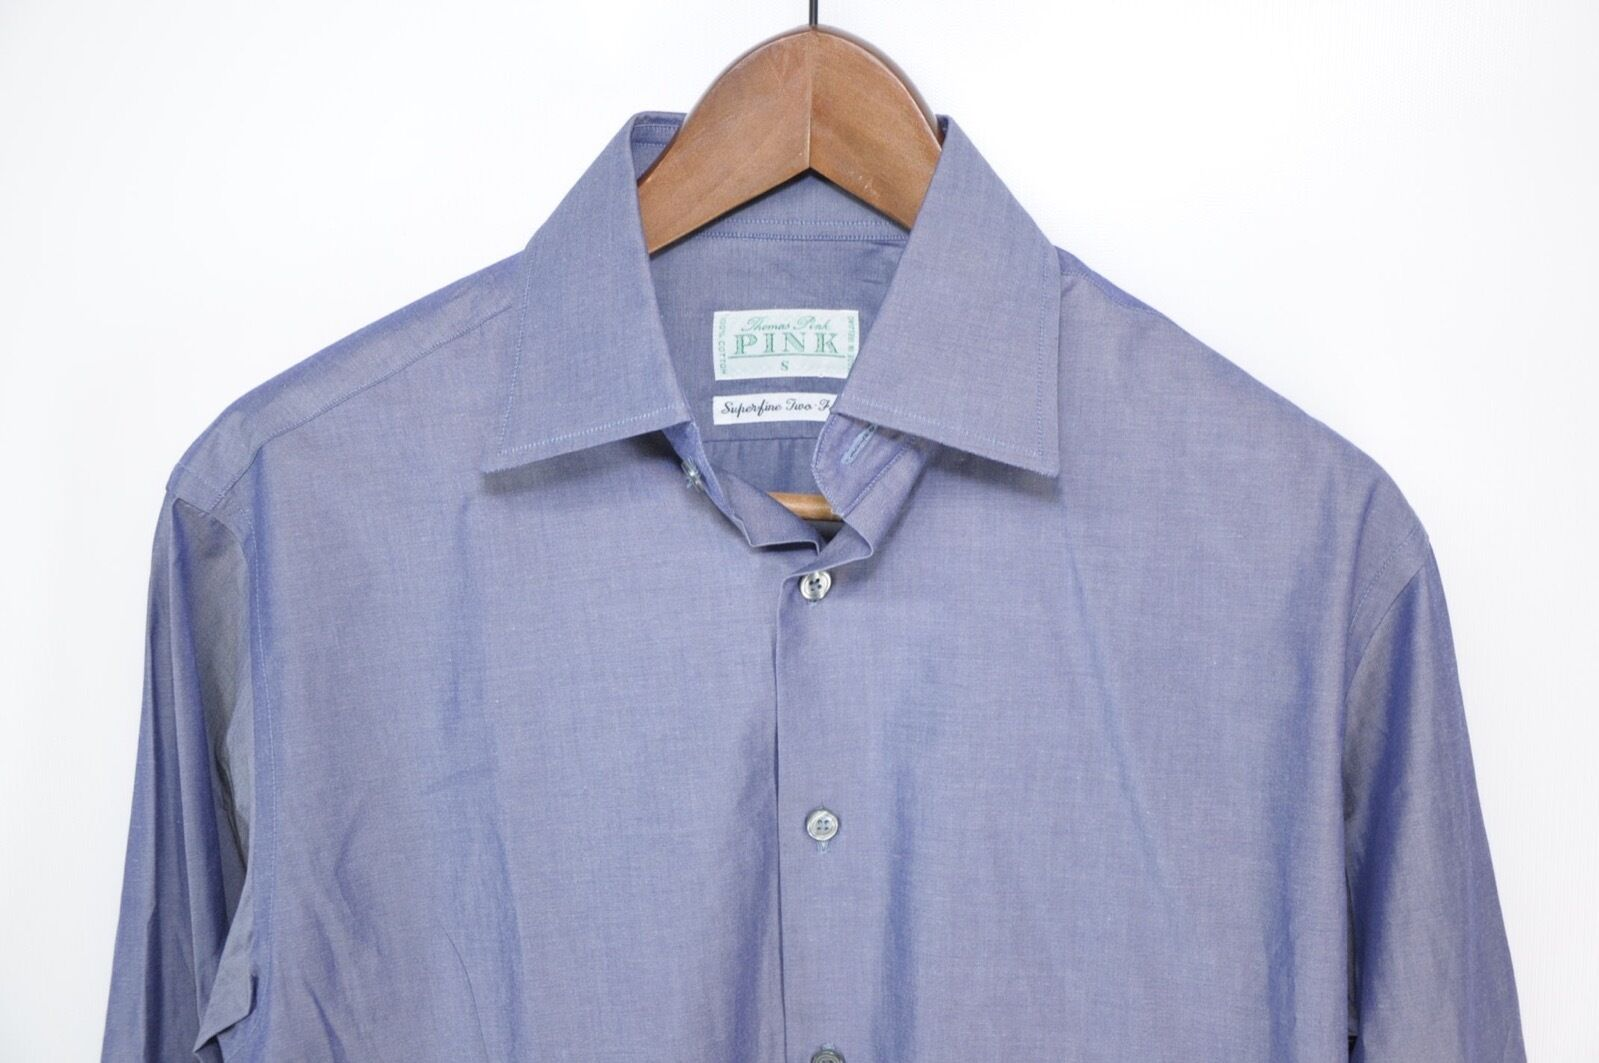 NWT Thomas Pink Superfine Two-Fold Solid bluee Spread Collar Shirt Ireland Small